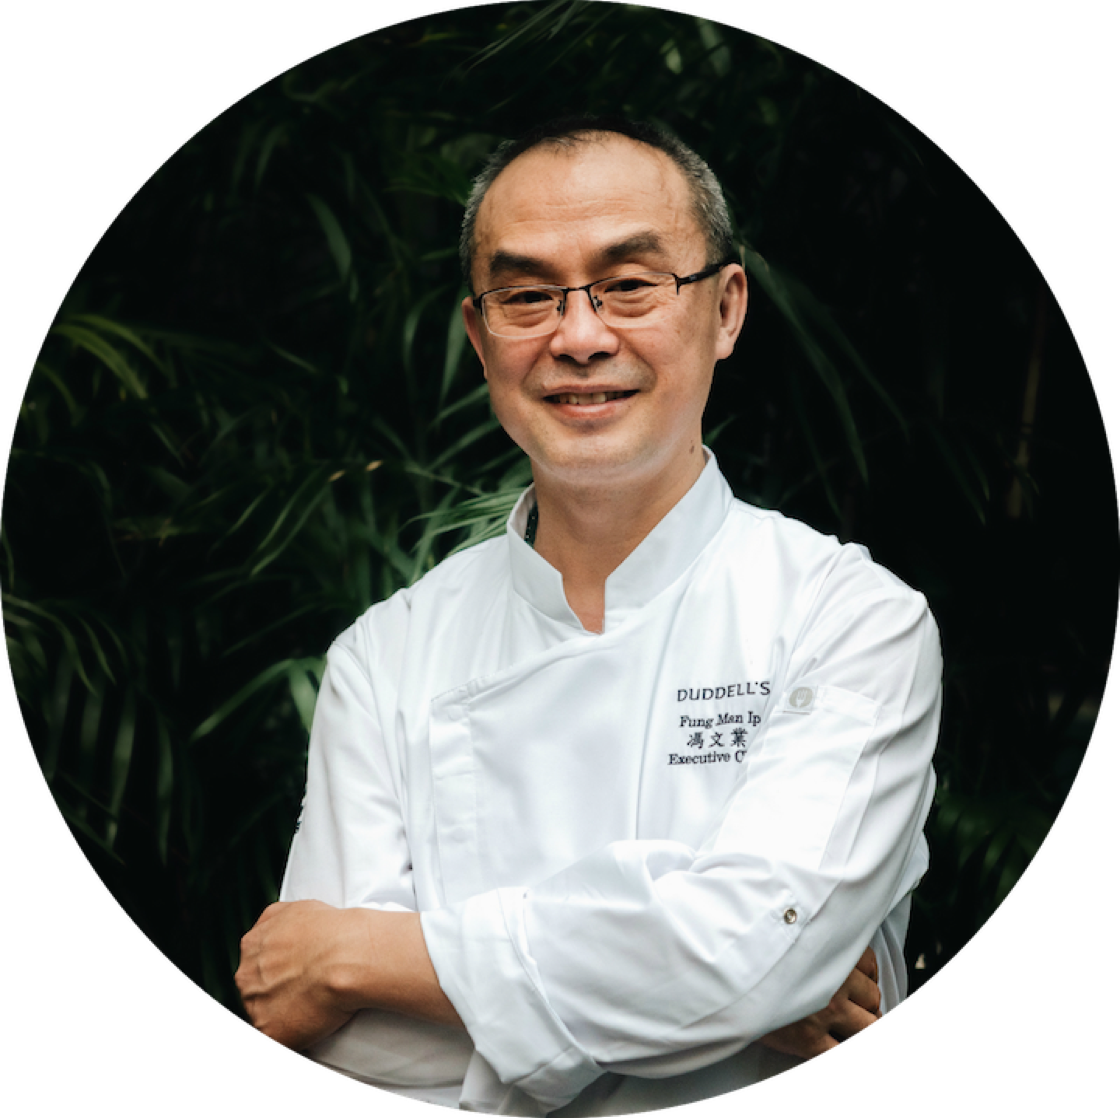 Duddells-Exective-Chef-FUNG-Man-Ip.png